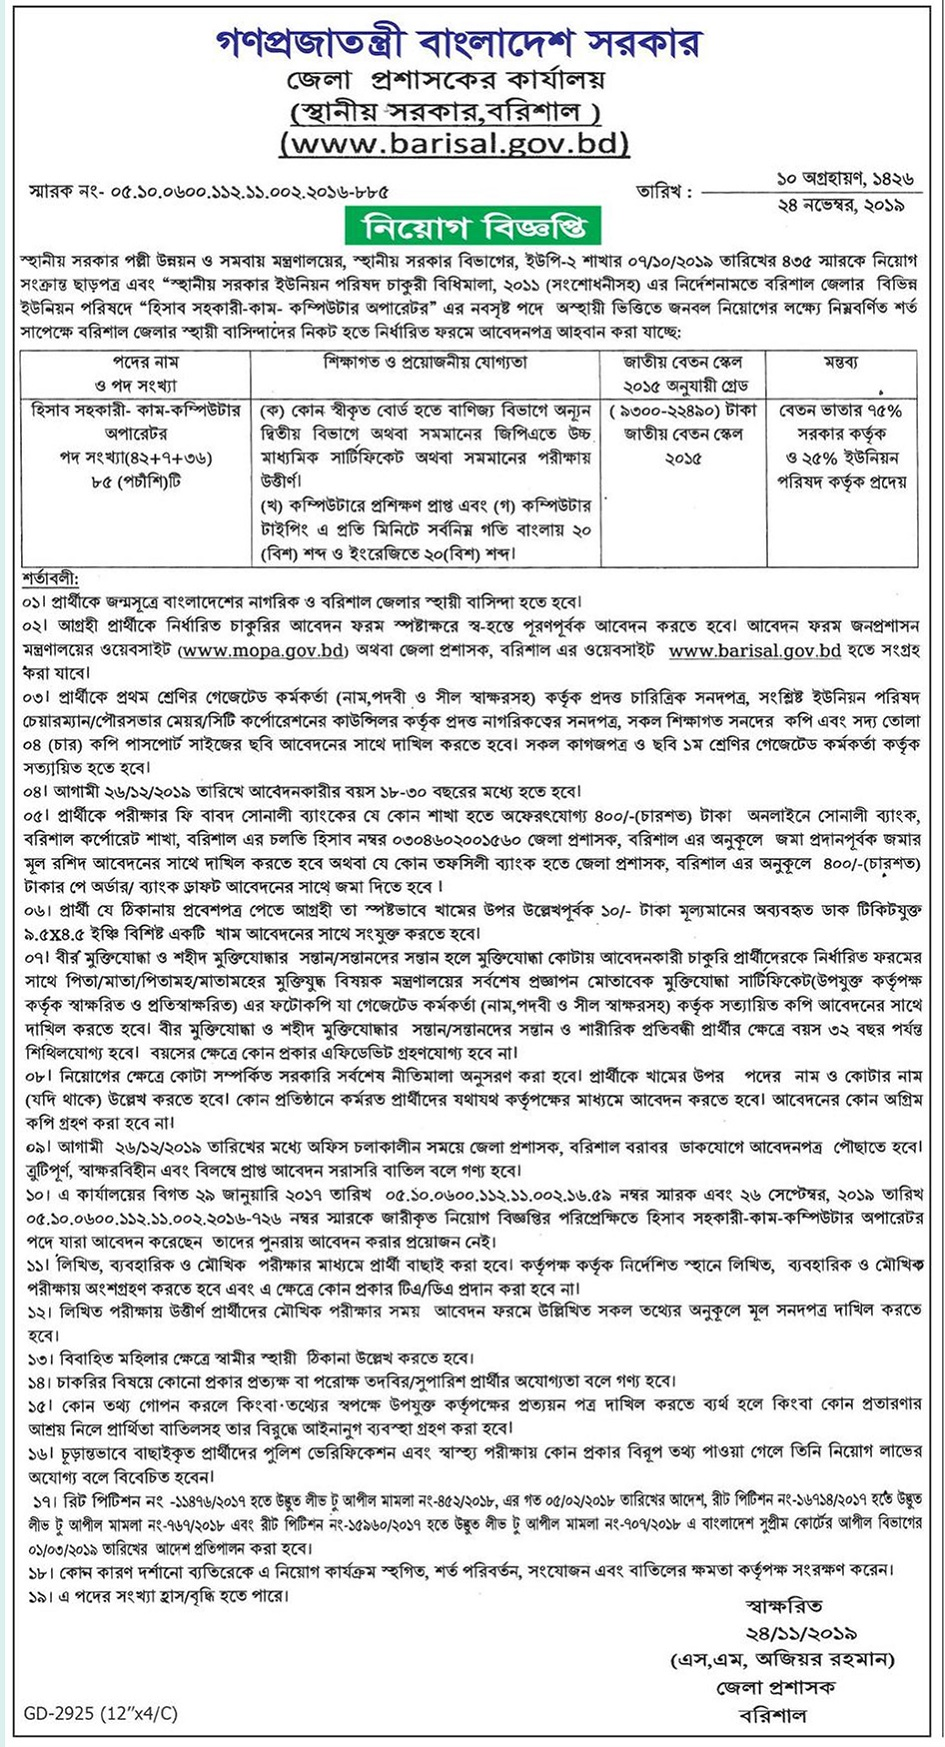 Barisal Deputy Commissioner's Office Job Circular 2019